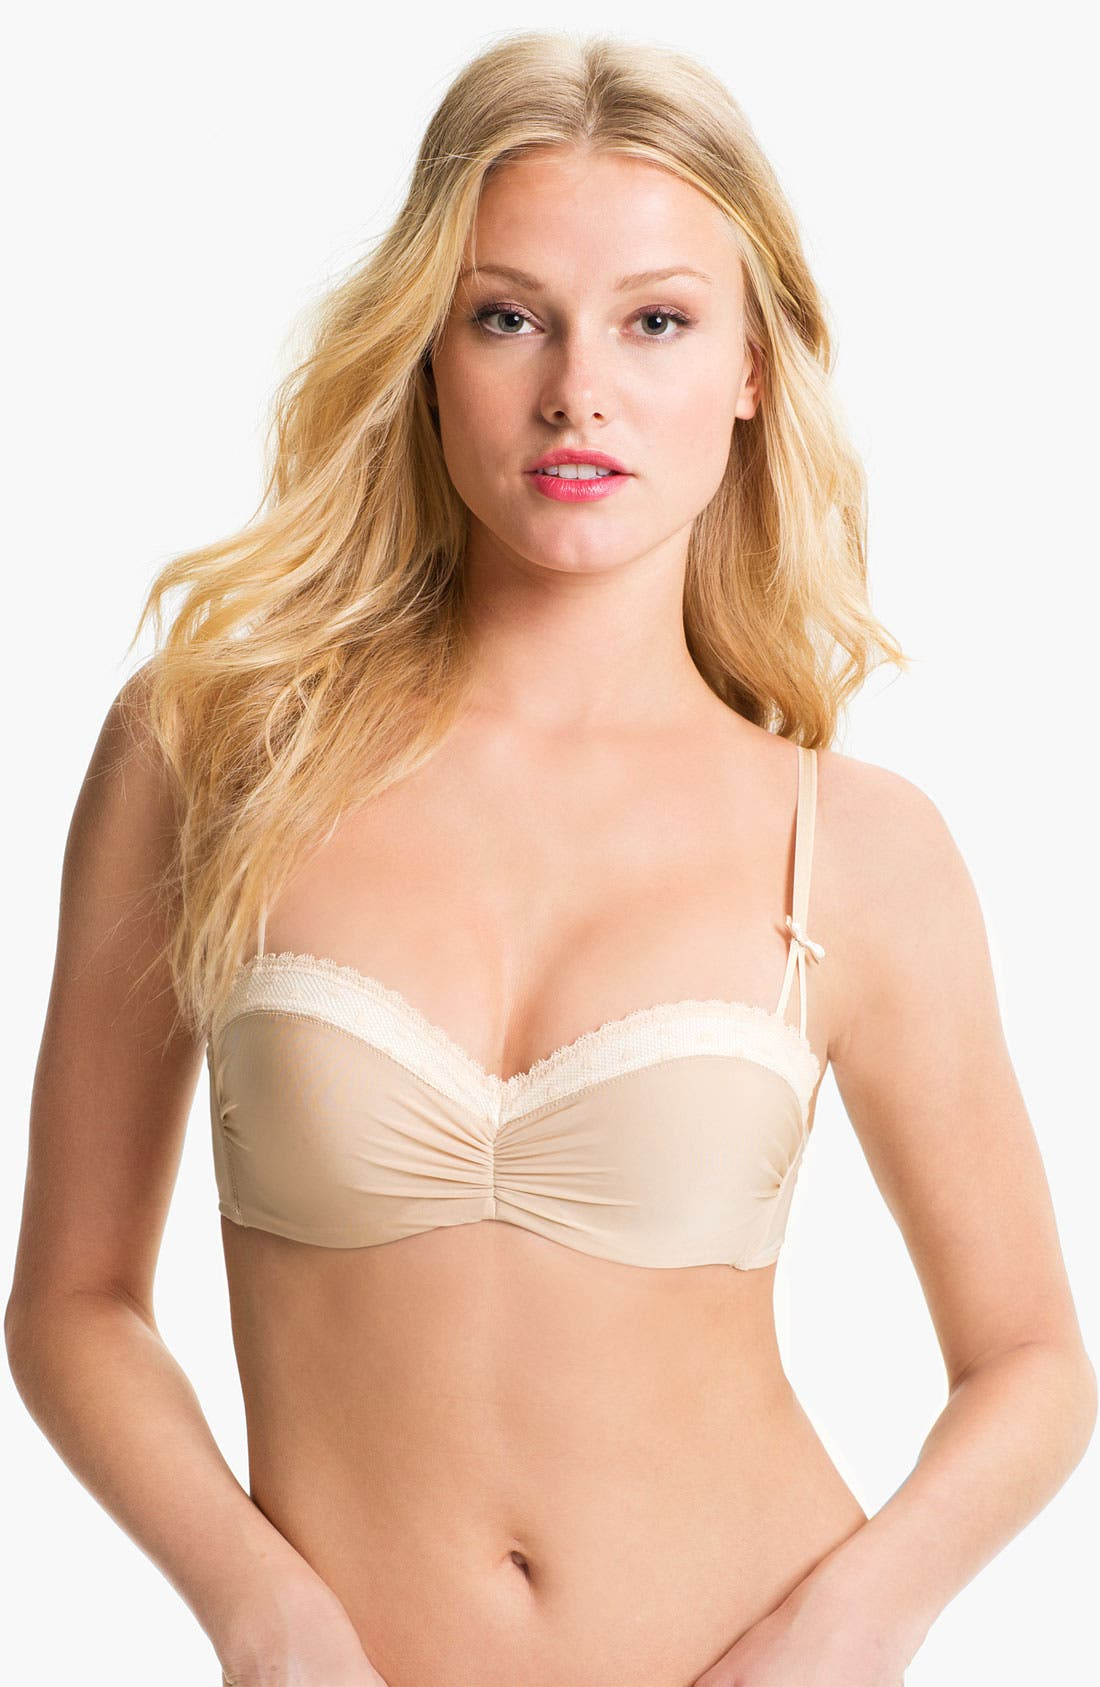 Alternate Image 1 Selected - Wacoal Petite Contour Underwire Bra